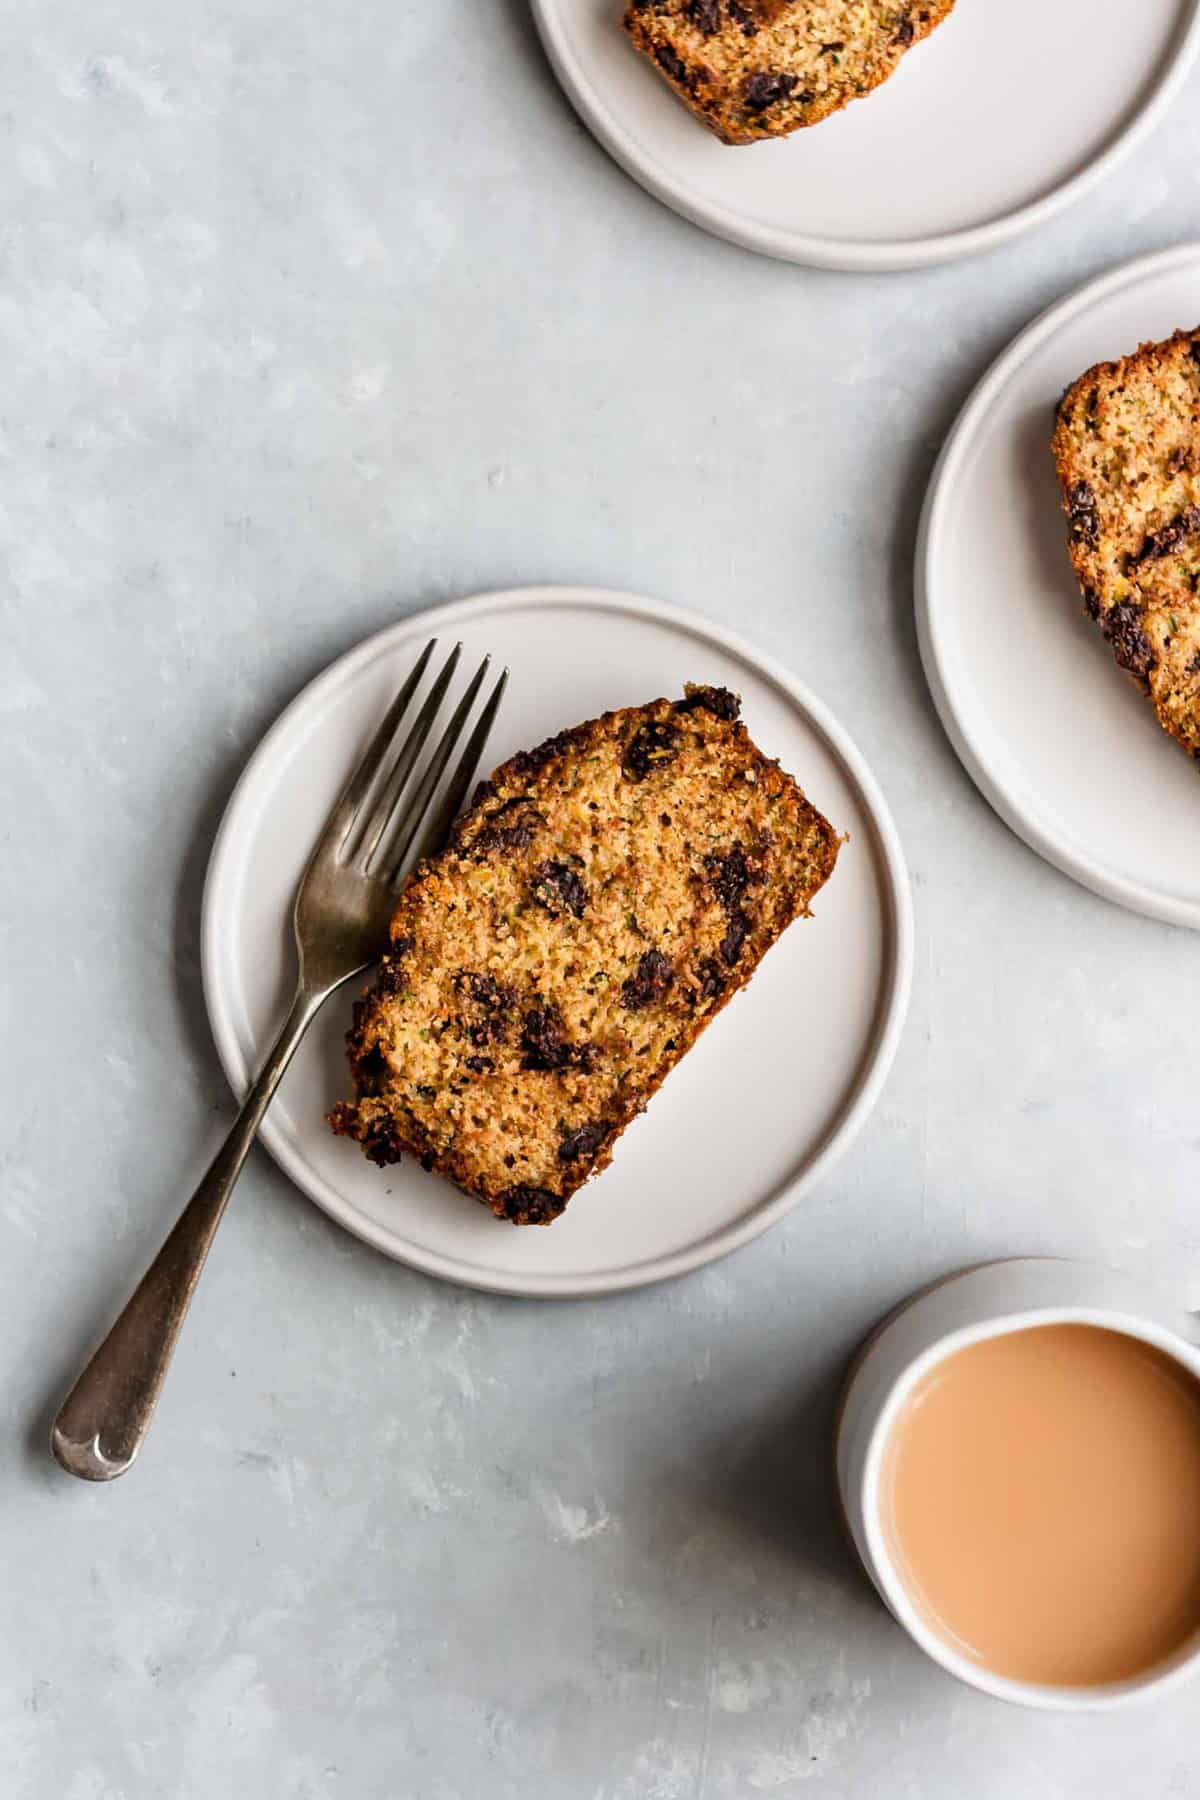 Slices of zucchini bread on plates with a fork and a mug of tea